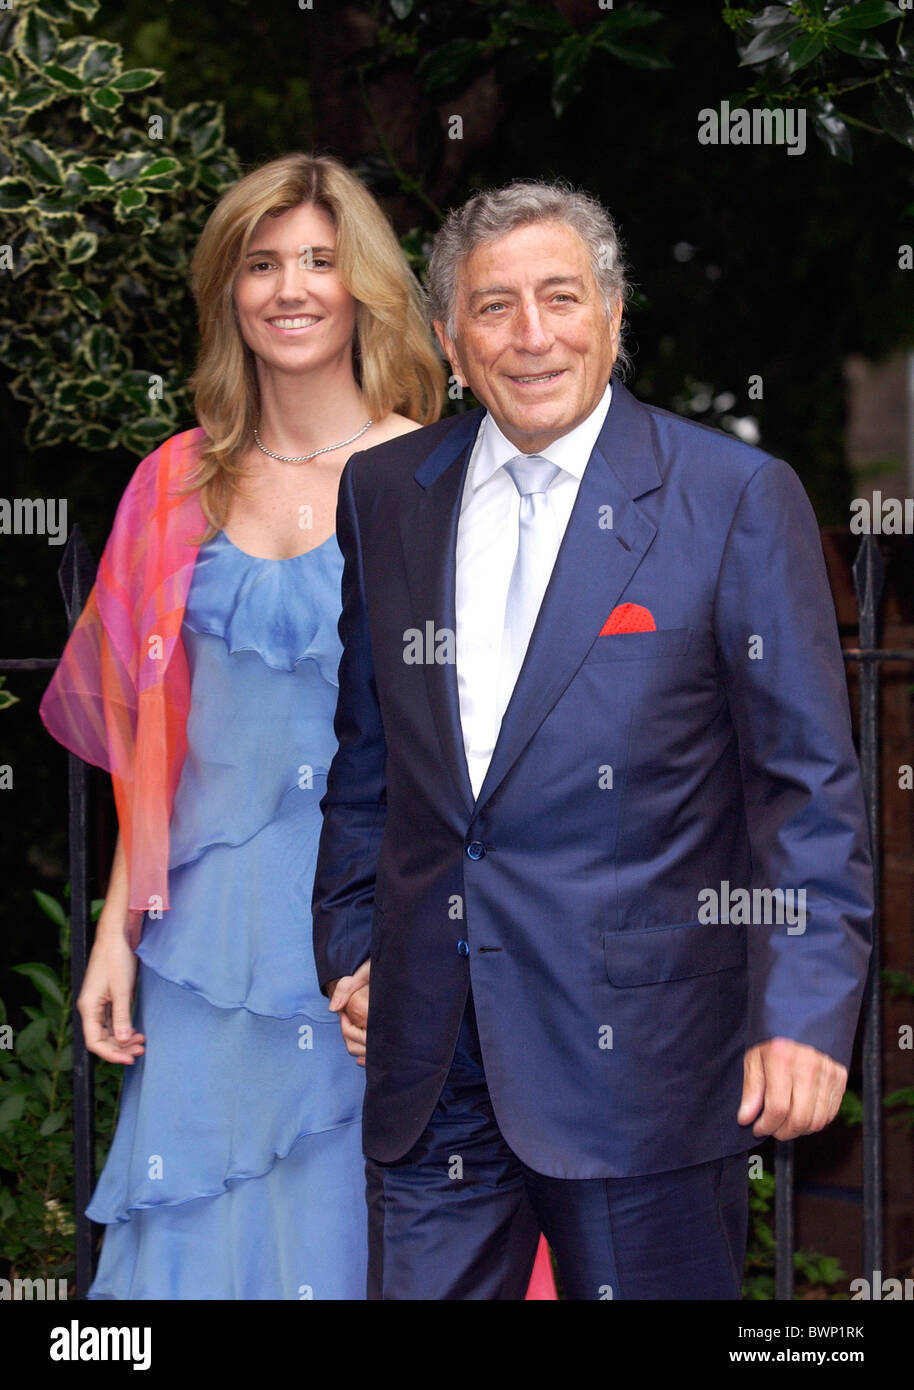 Musician and singer Tony Bennett  Susan Crow (CHECK?) at summer party in Carlyle Square, Chelsea, London - Stock Image